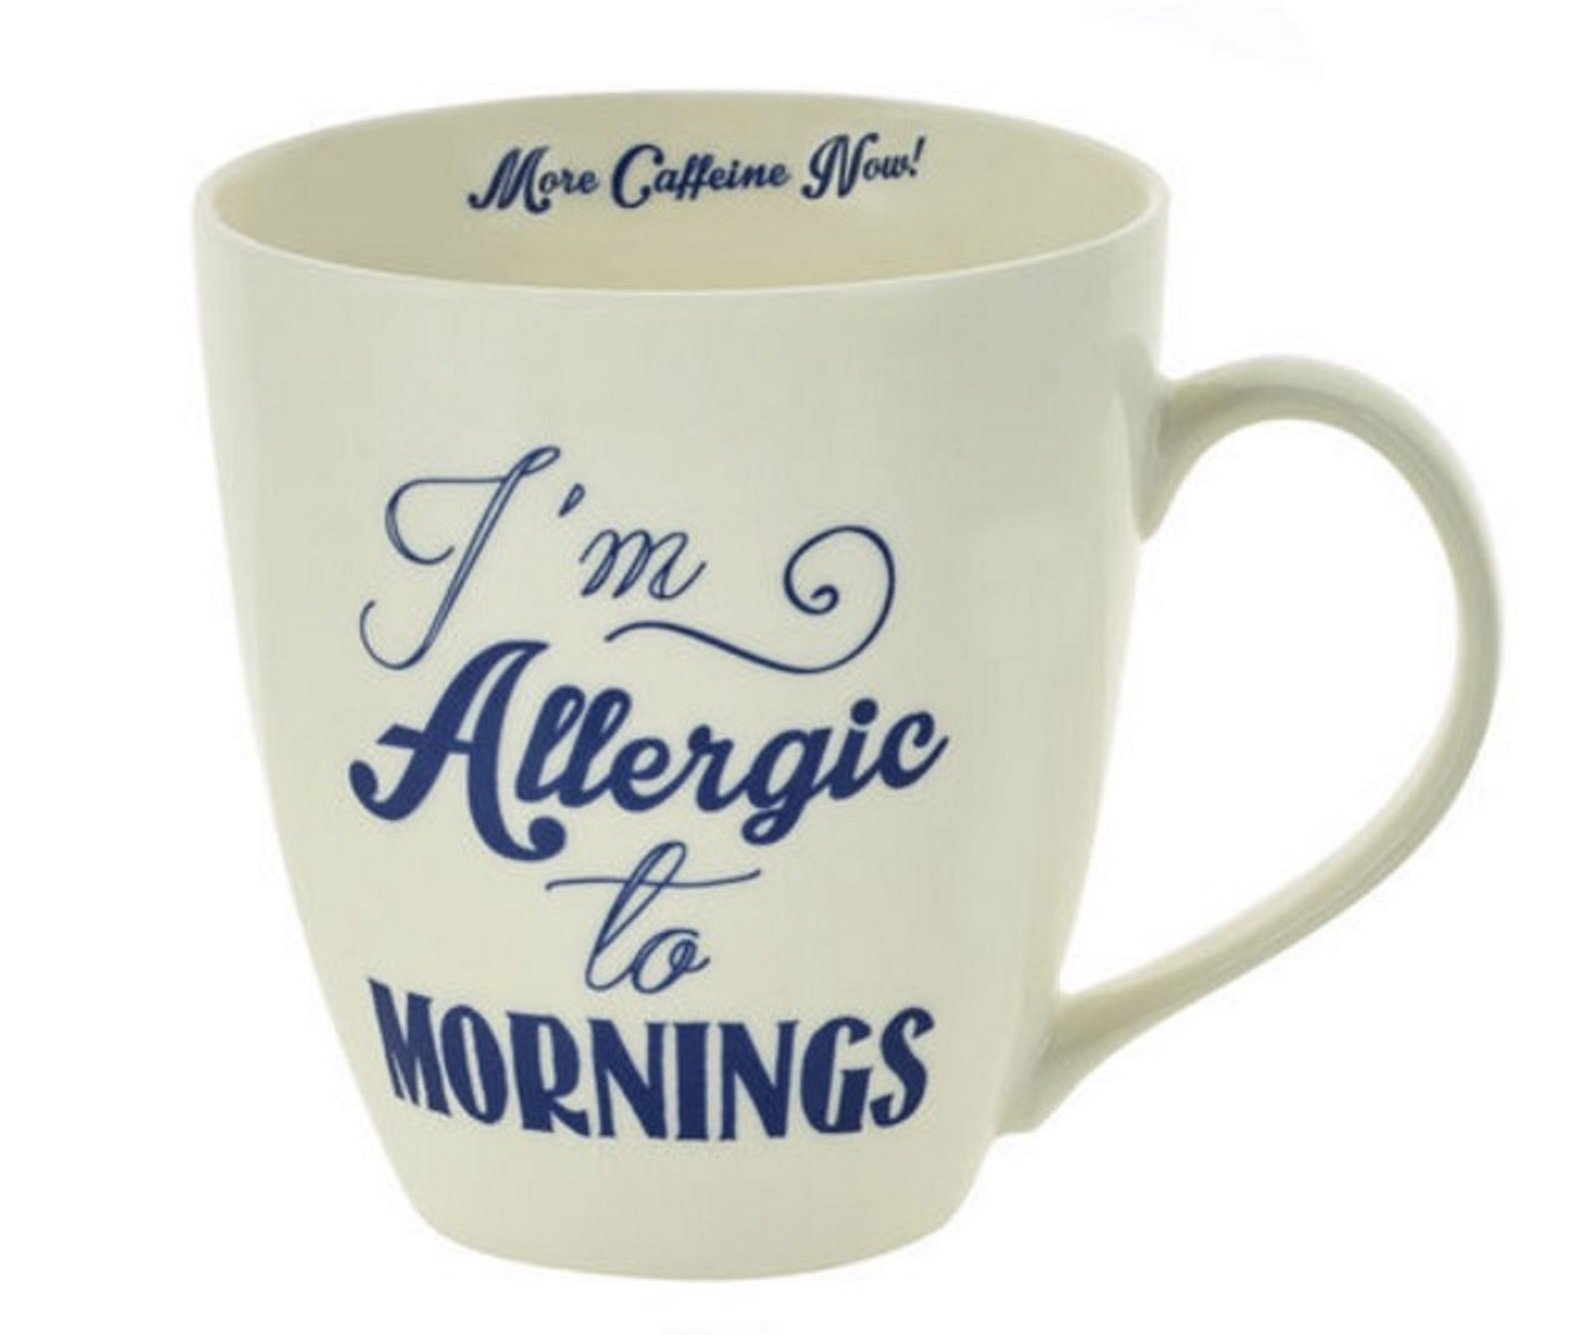 Pfaltzgraff Everyday Large Coffee Mug Im Allergic To Mornings More Caffeine Now 18 Ounces